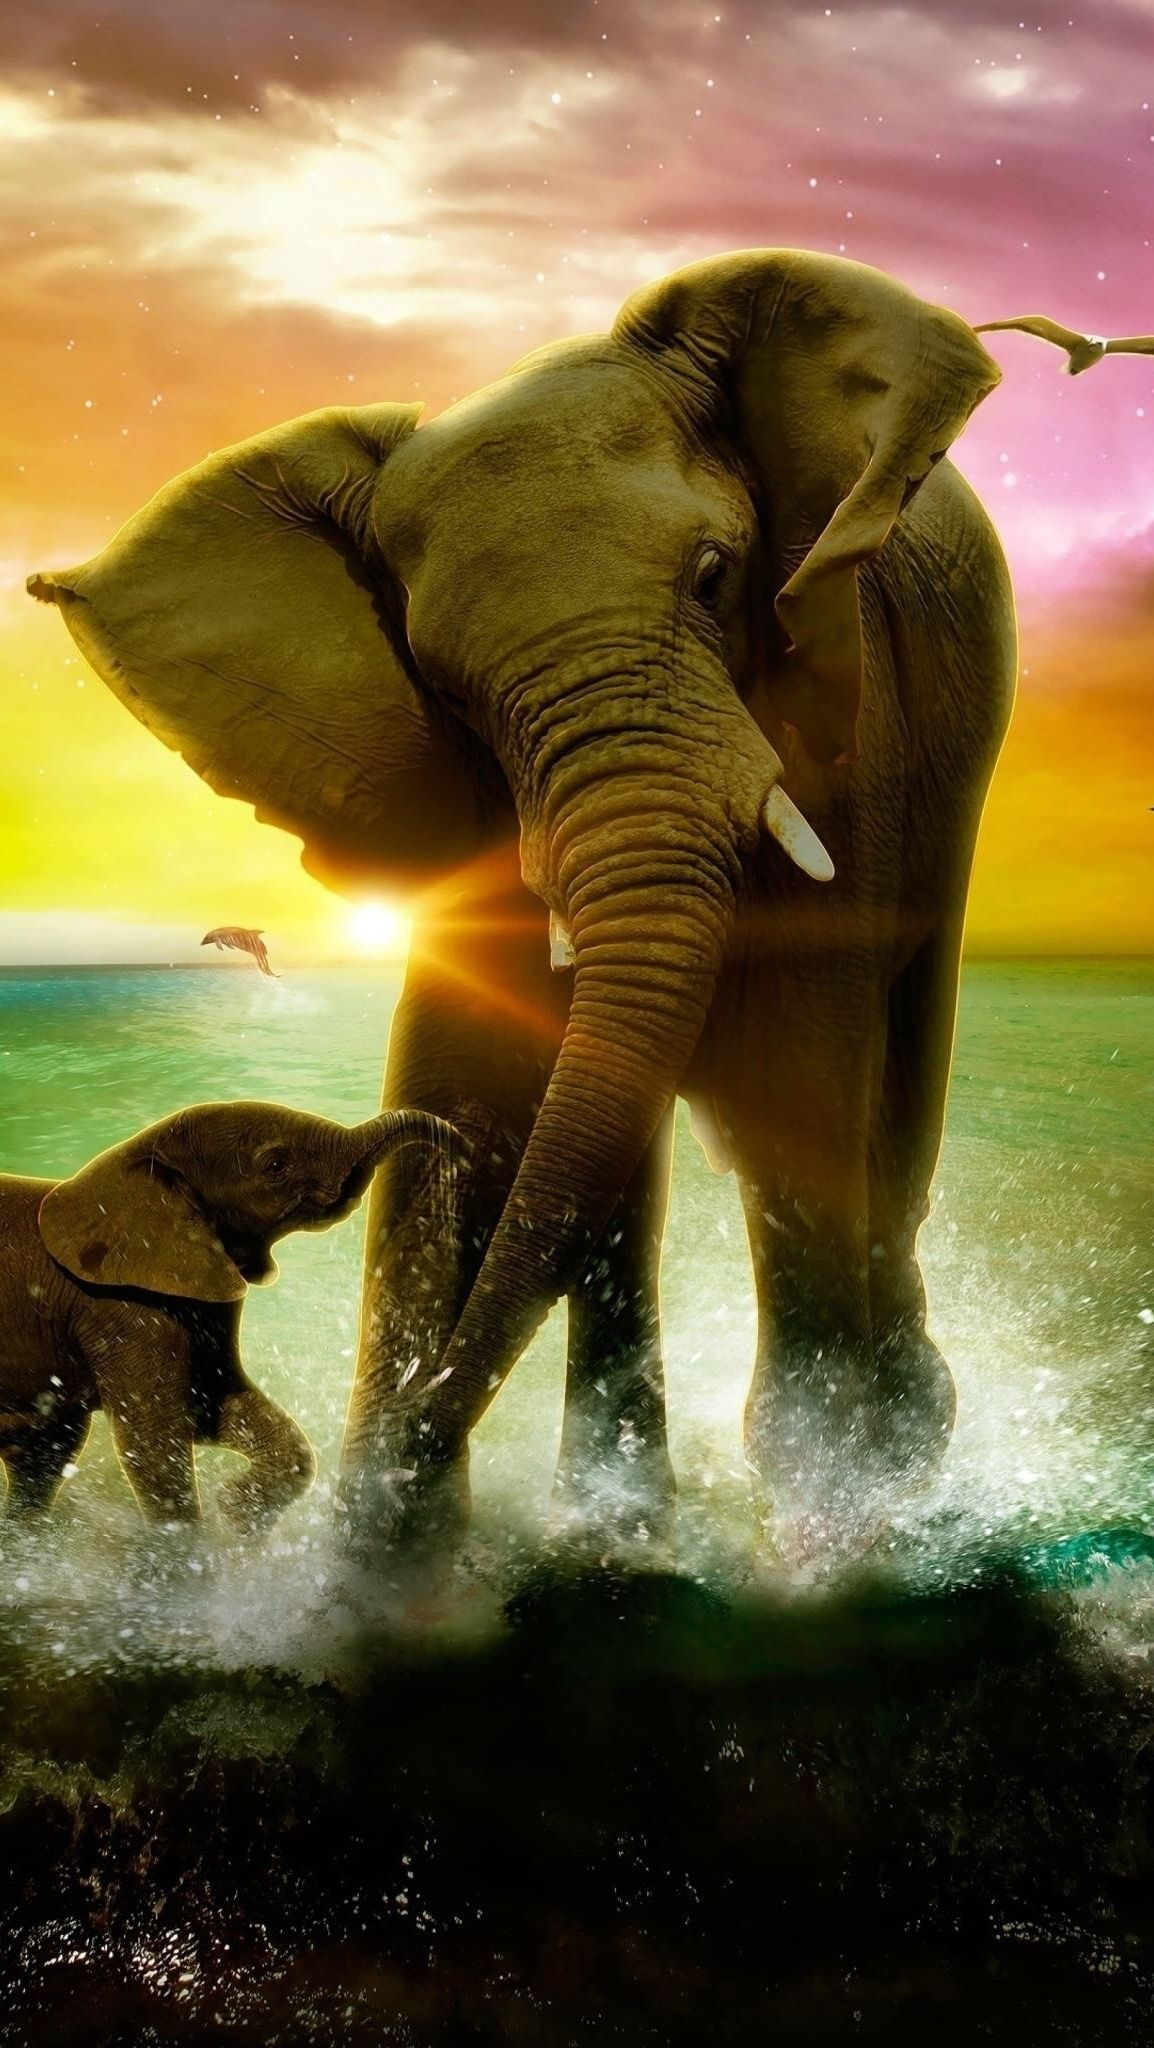 Hd iphone wallpaper wallpapers elephant wallpaper - Elephant background iphone ...